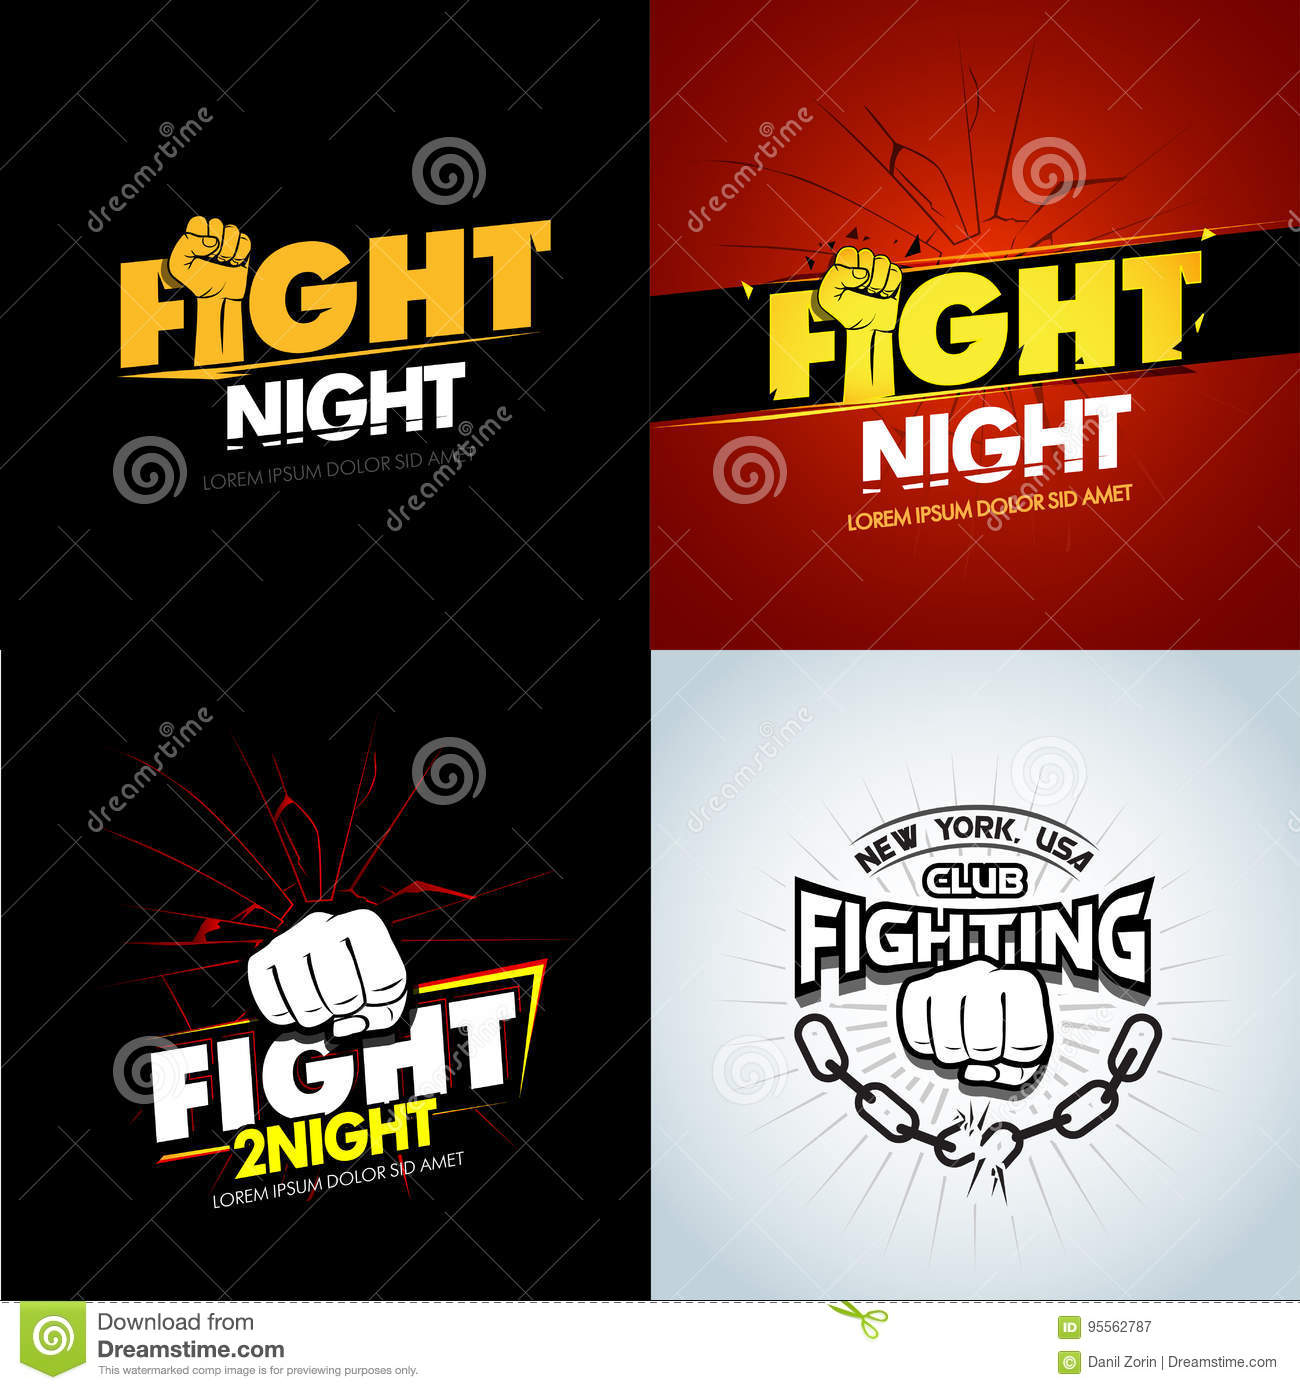 4 modern professional fighting poster templates logo design with